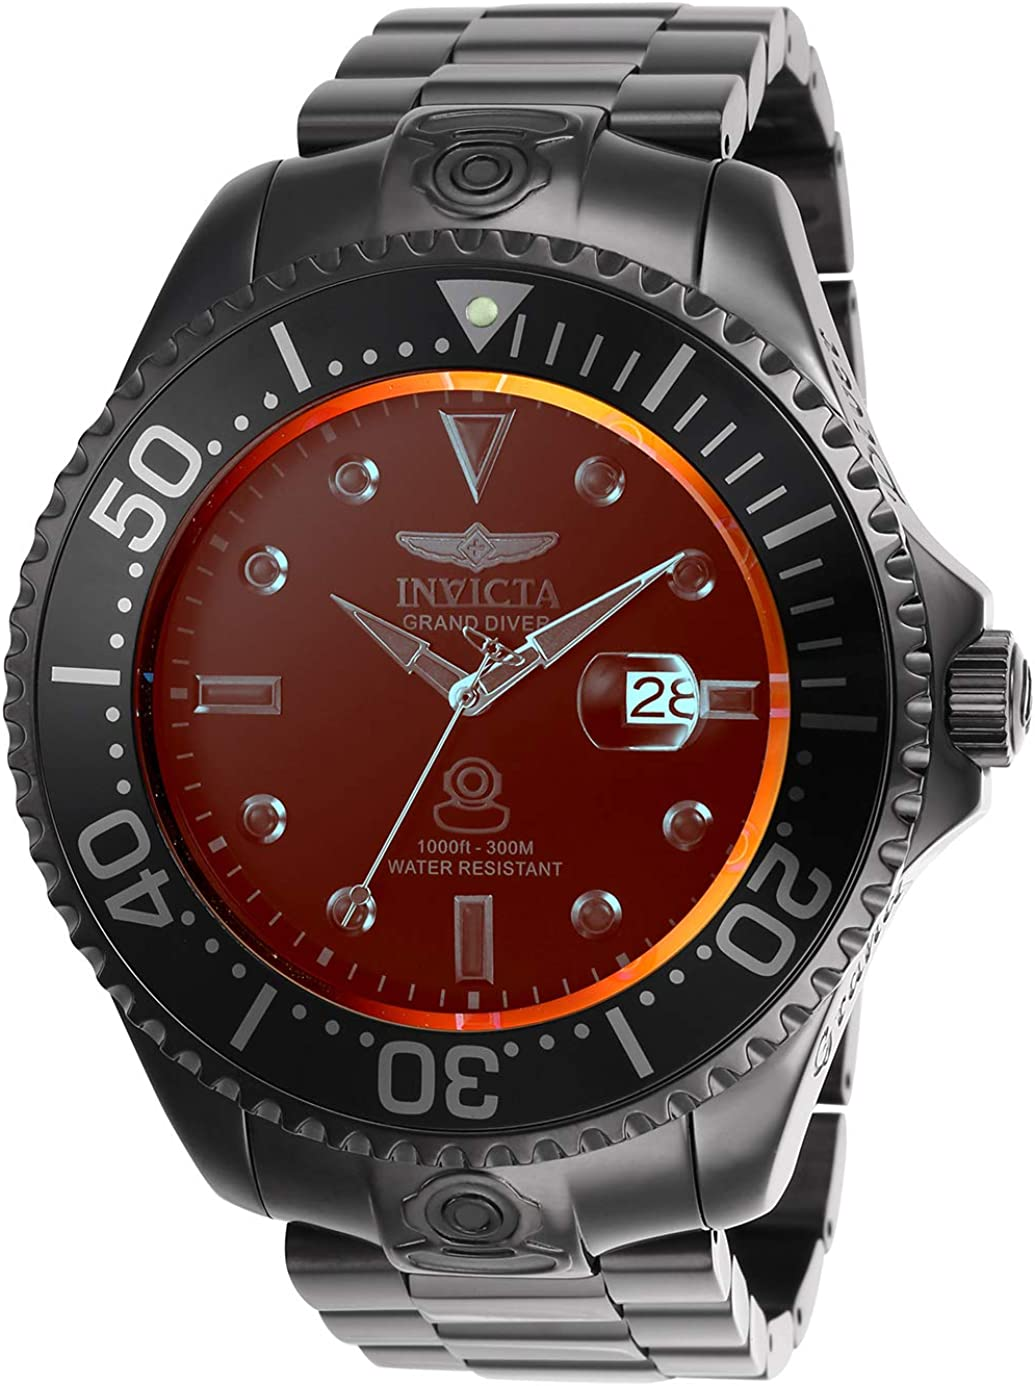 Invicta Men s Pro Diver Automatic-self-Wind Diving Watch with Stainless-Steel Strap, Black, 26 Model 26330